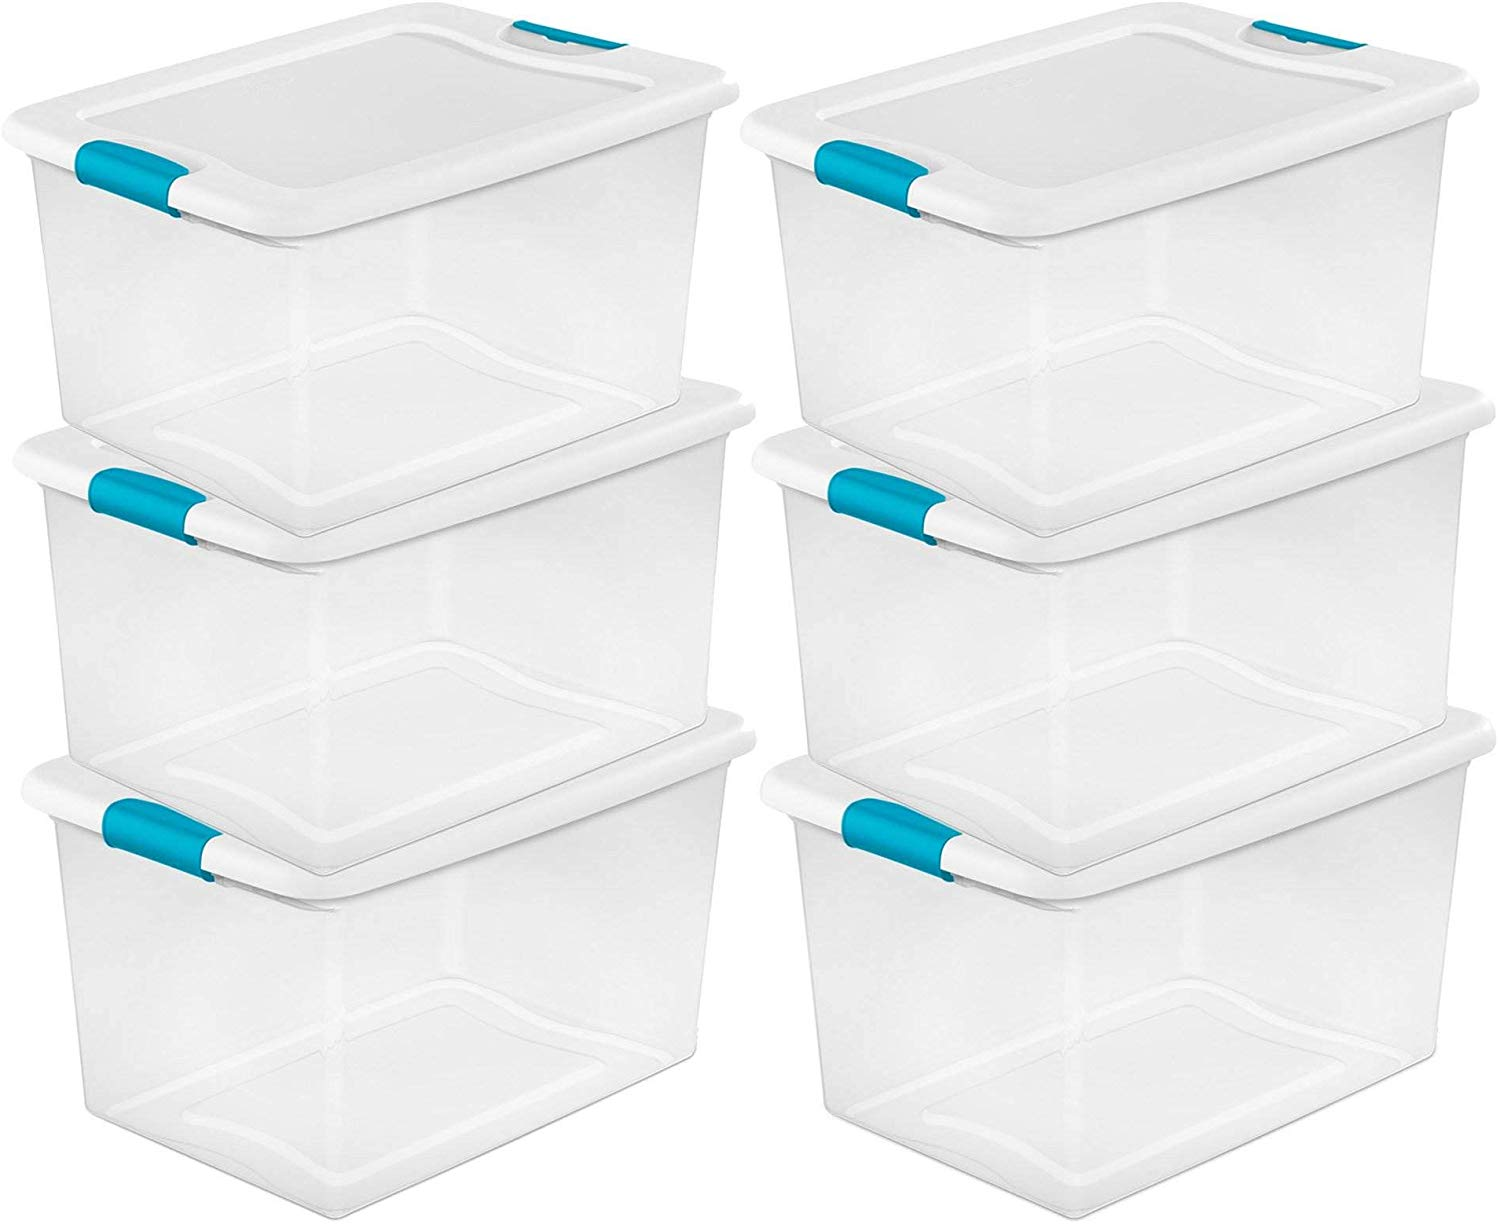 Large Clear Storage Box 23.75 Inch (Pack of 6)